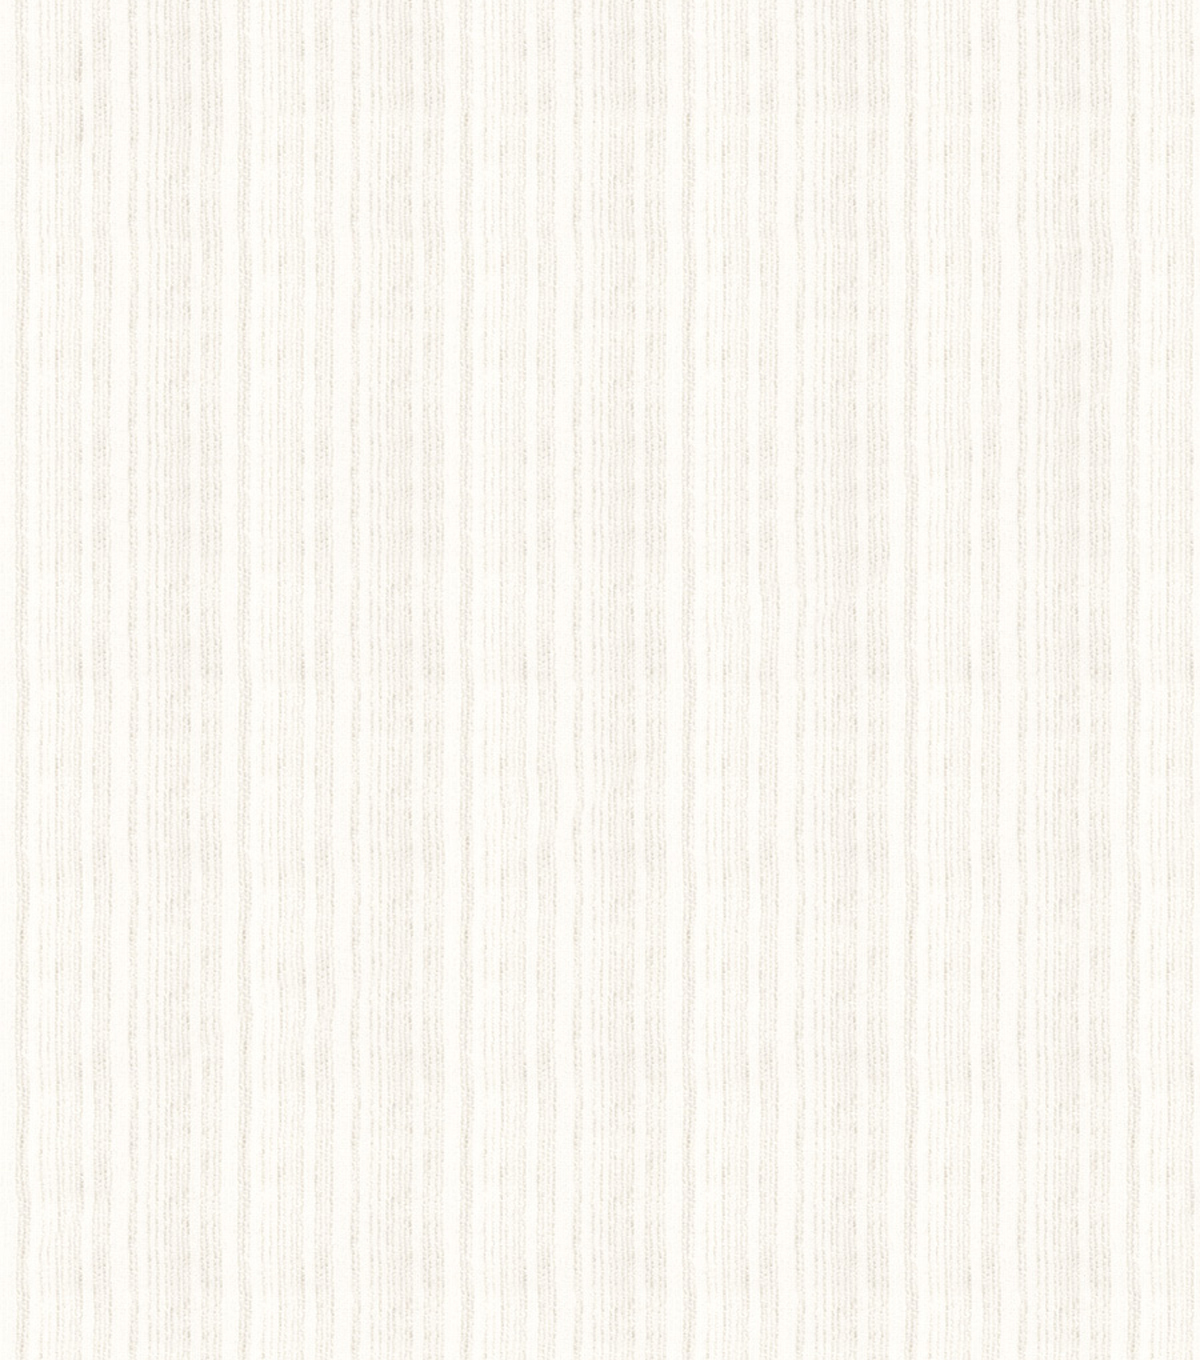 Home Decor 8\u0022x8\u0022 Fabric Swatch-Eaton Square Avon Sand